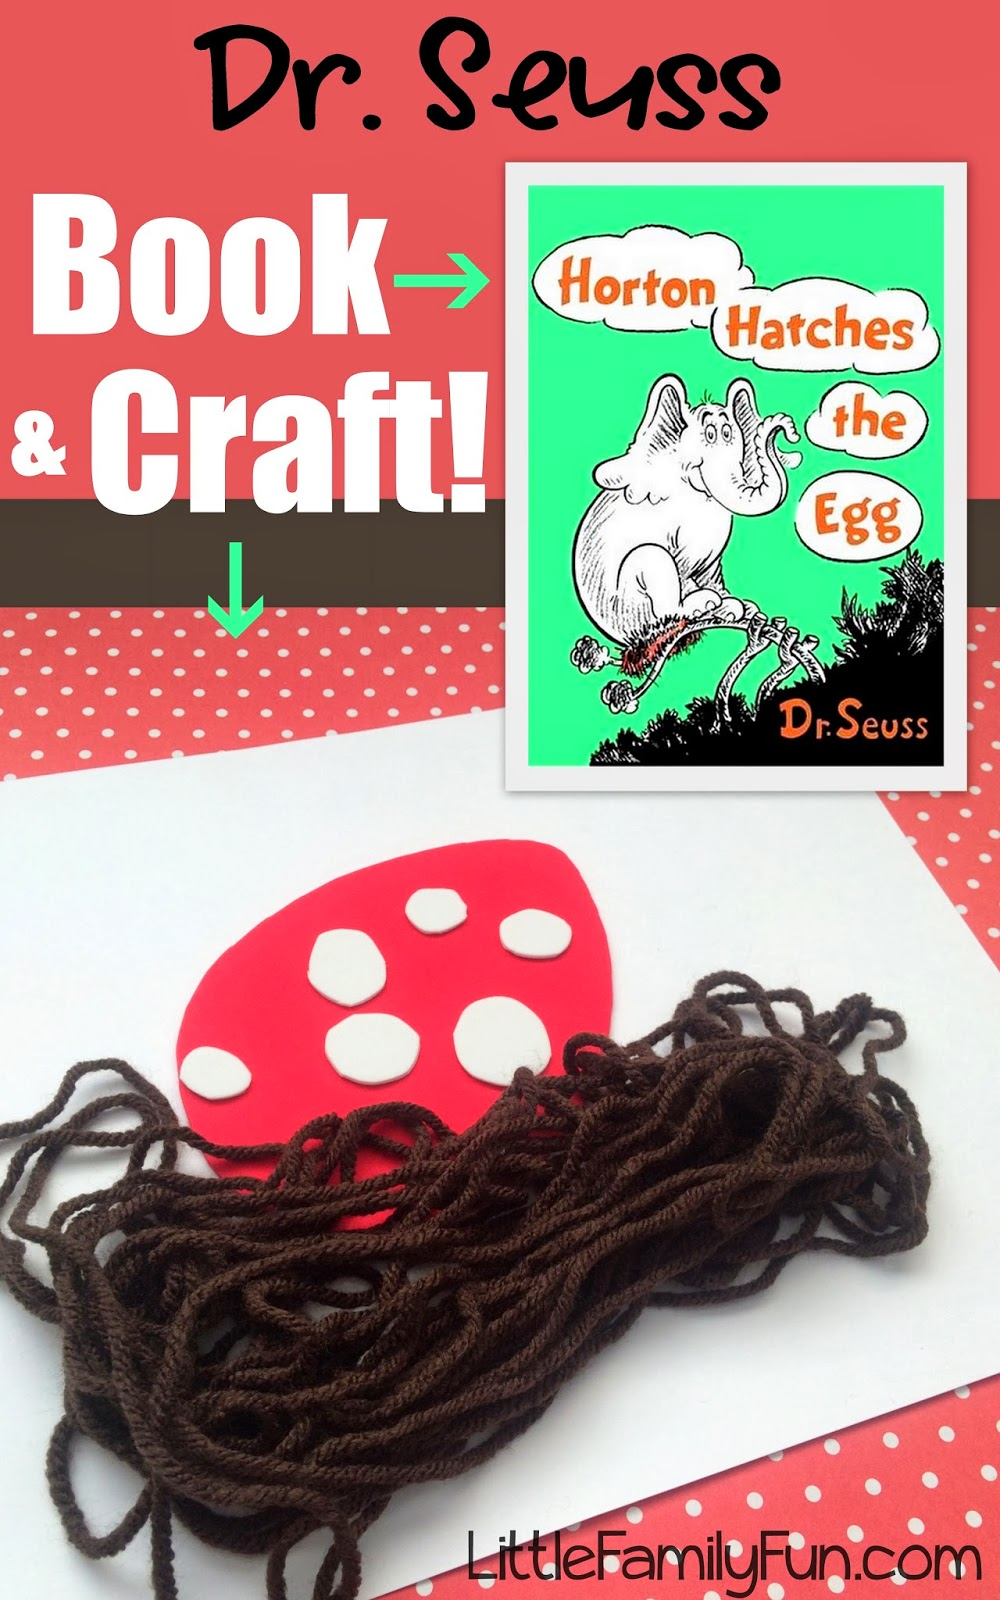 http://www.littlefamilyfun.com/2014/02/horton-hatches-egg-craft-dr-seuss-book.html